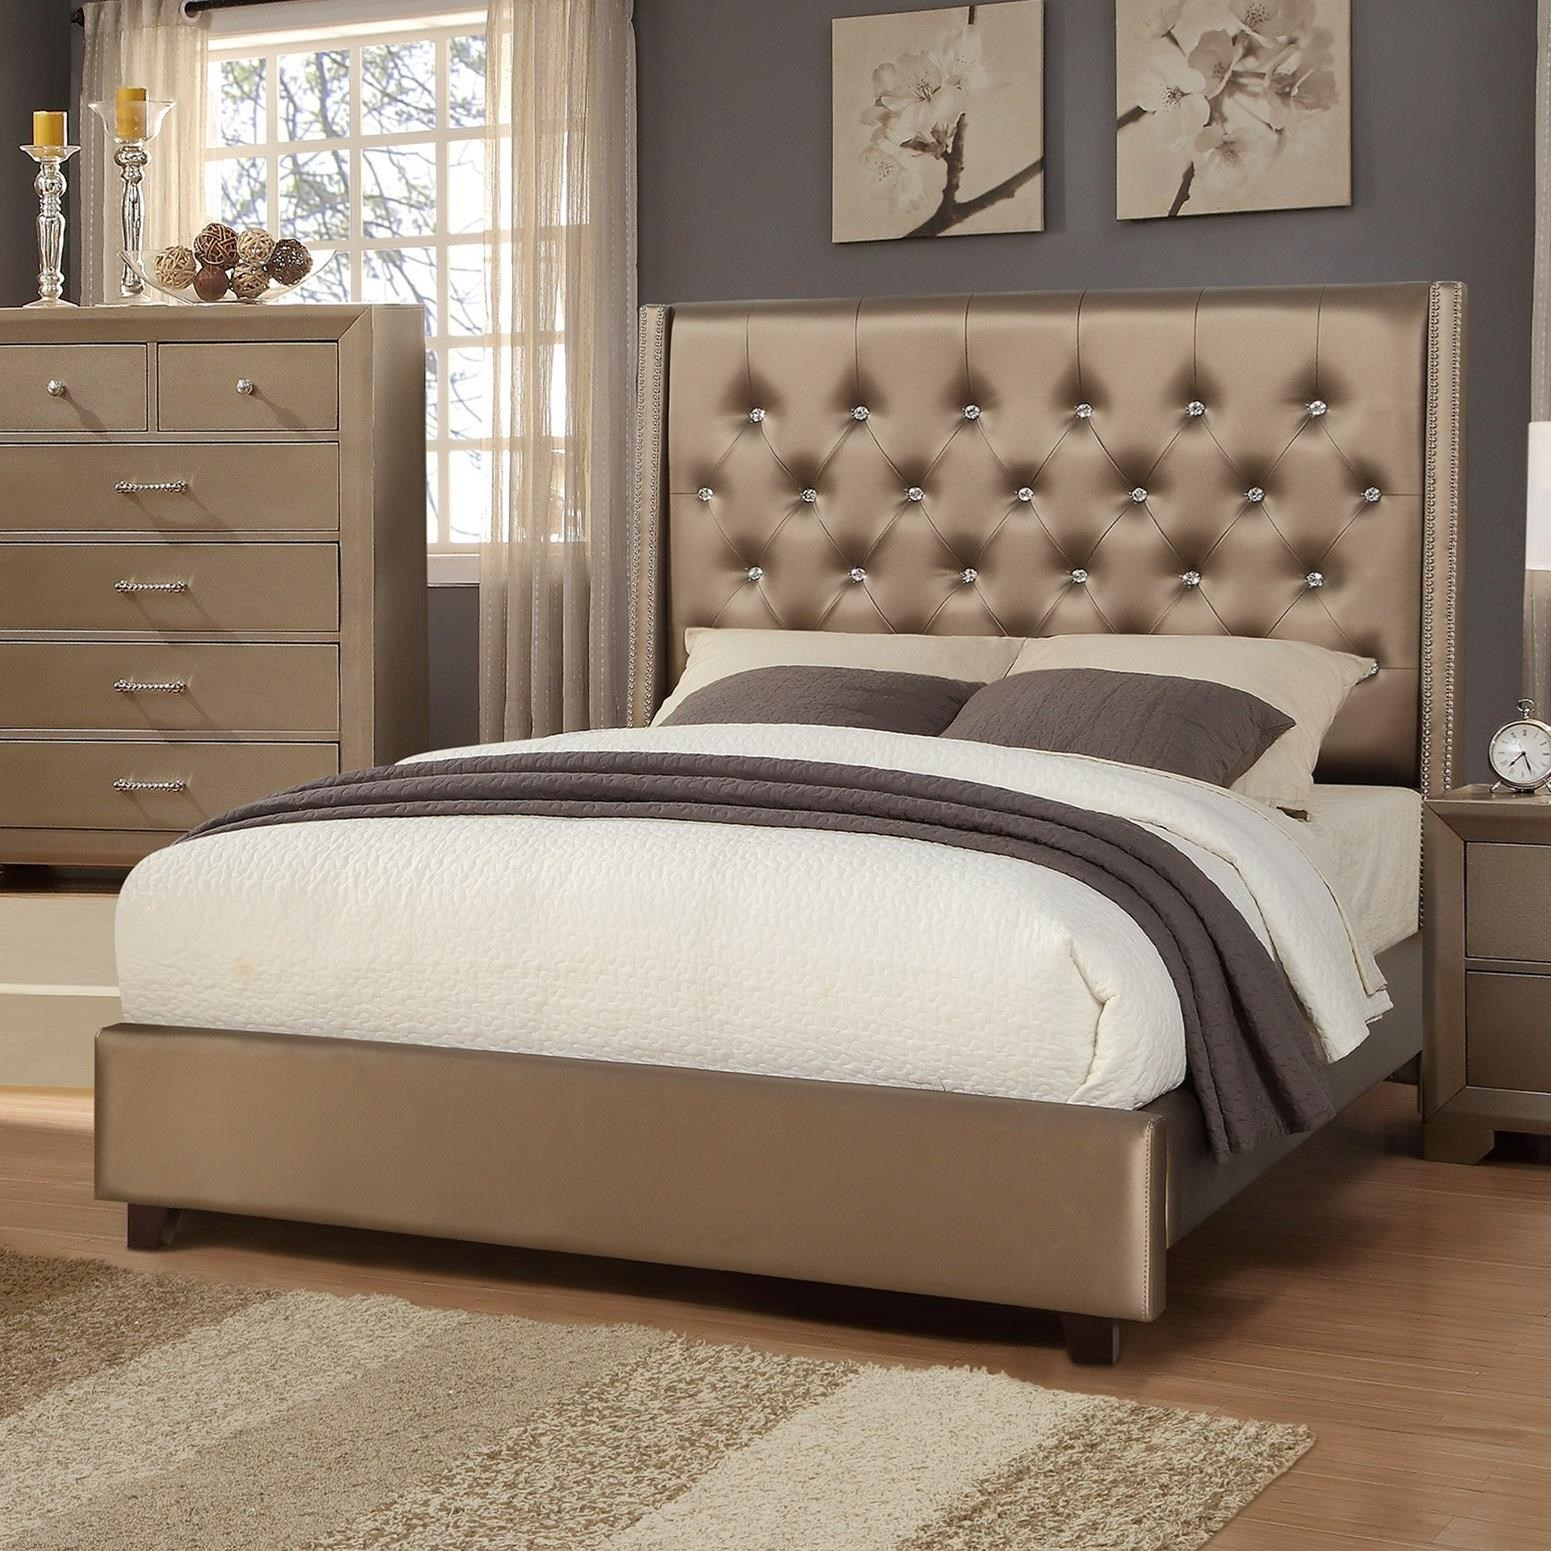 Crown Mark Fontaine Upholstered Queen Bed - Item Number: 5017-Q-HB+